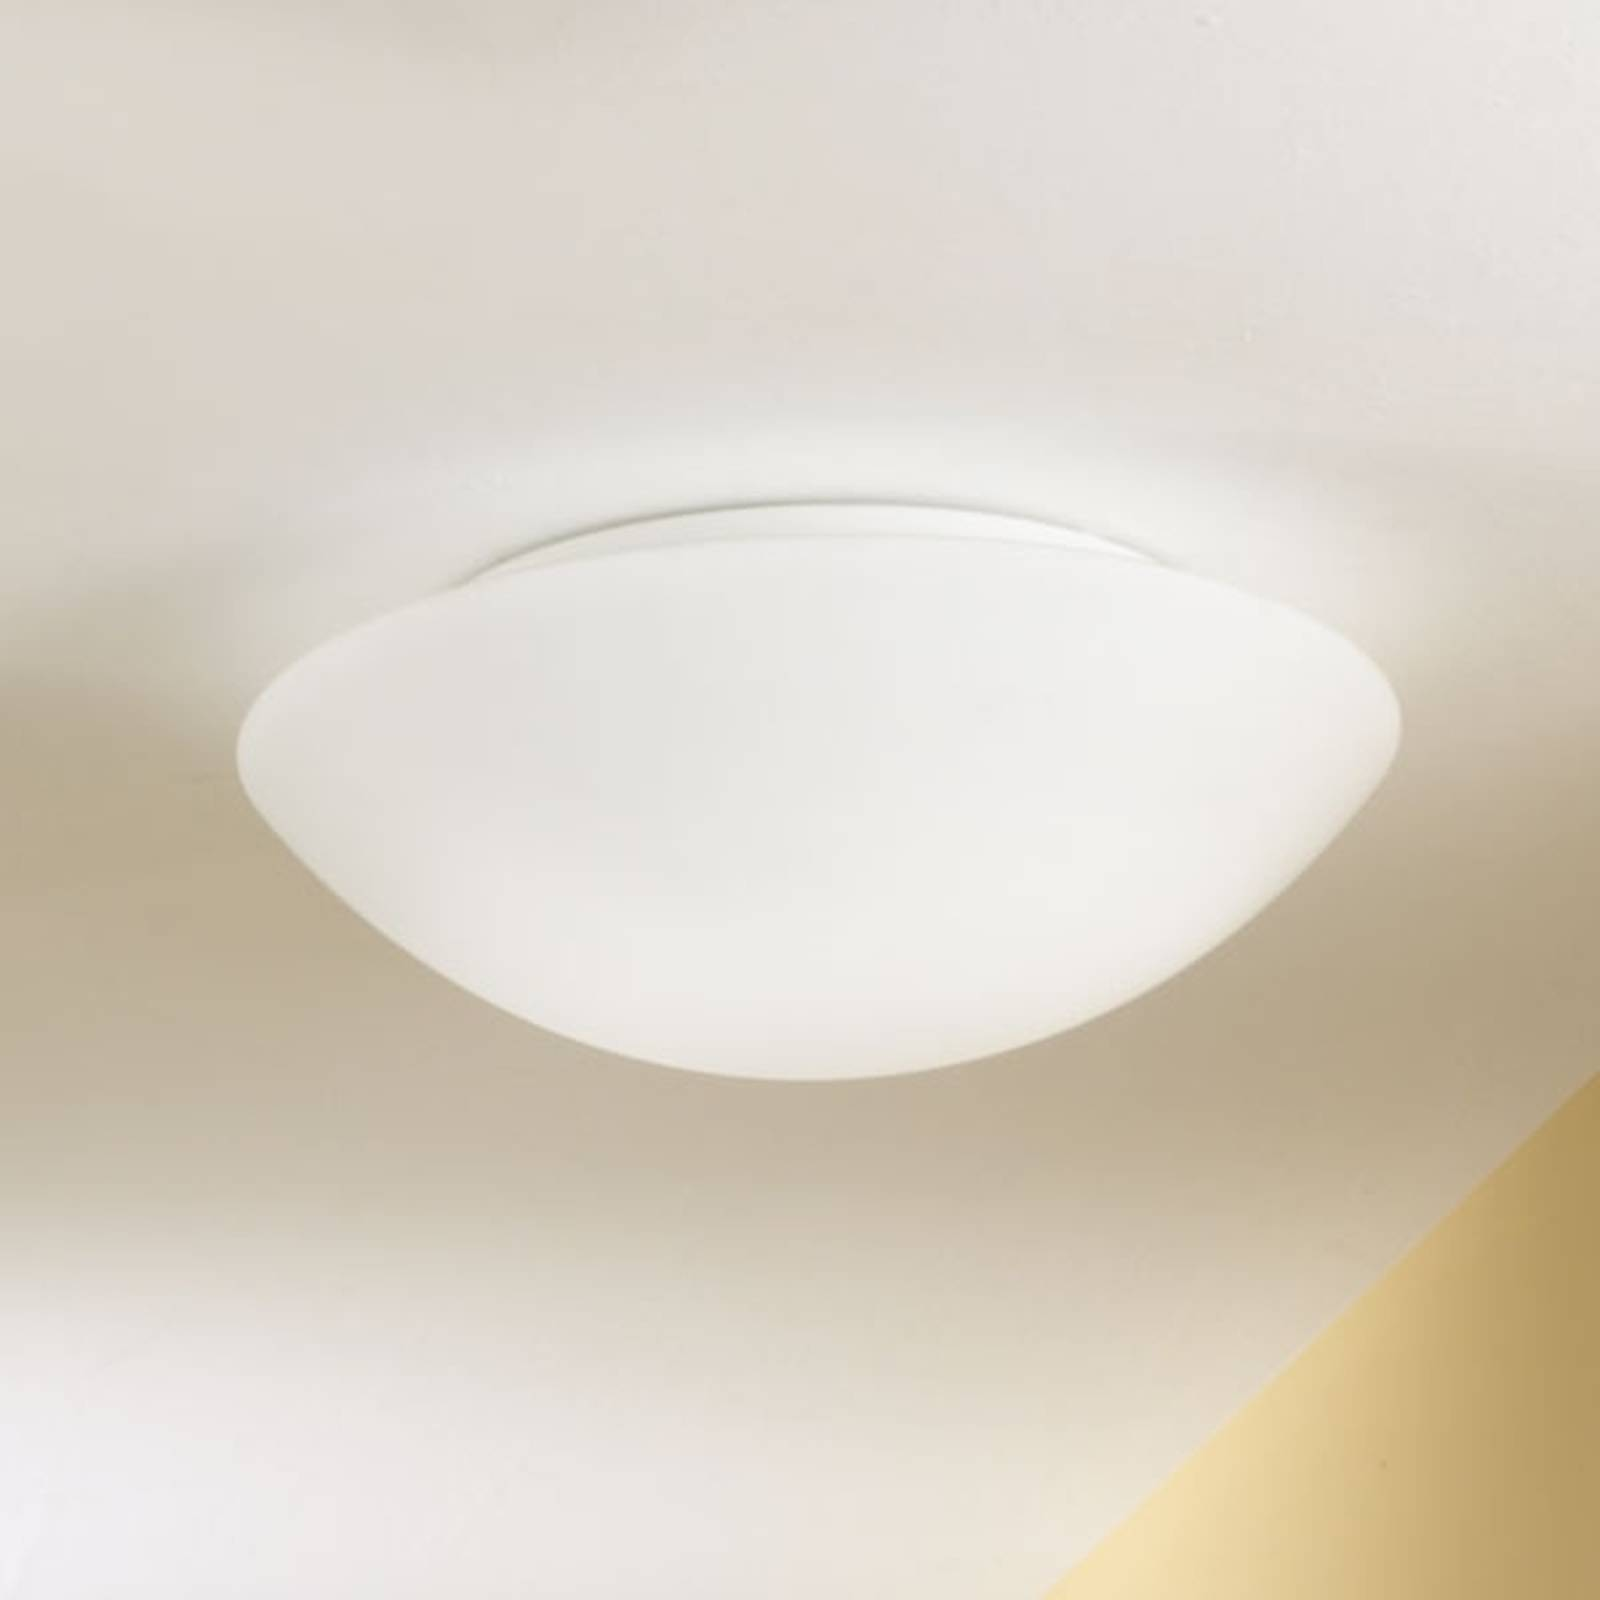 Ceiling and wall light PANDORA 25 cm from FABAS LUCE